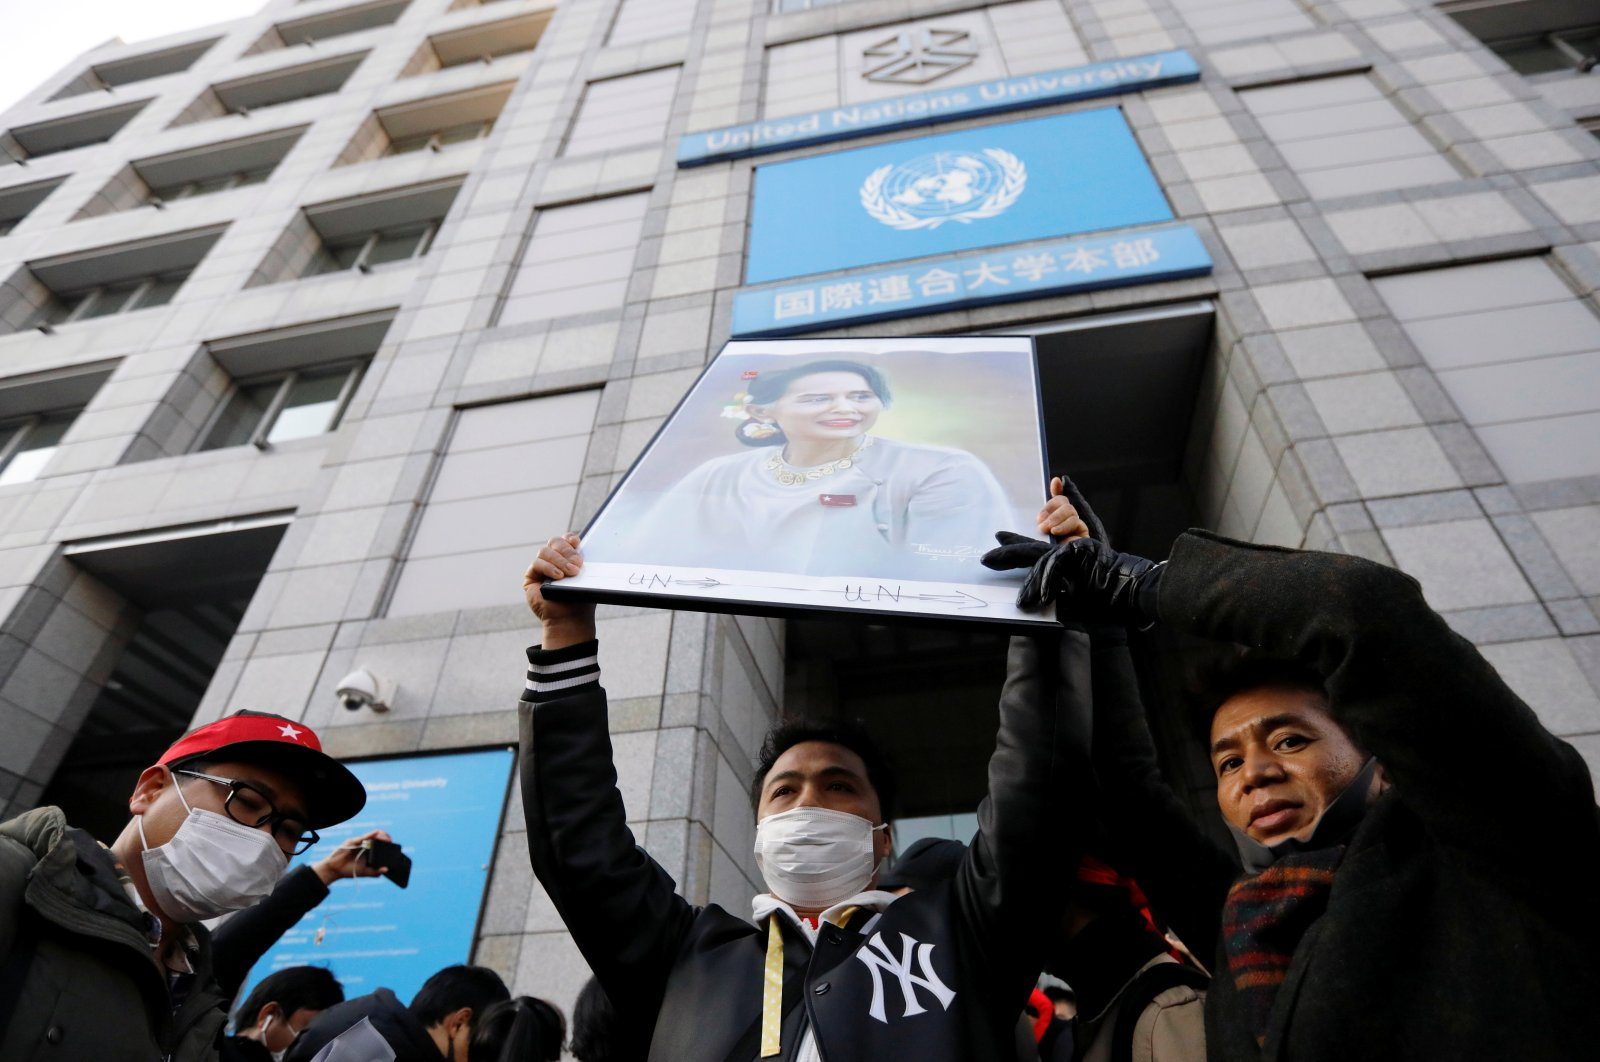 Protesters from Myanmar residing in Japan hold a portrait of leader Aung San Suu Kyi at a rally against Myanmar's military after it seized power from a democratically elected civilian government and arrested Suu Kyi, at United Nations University in Tokyo, Japan, Feb. 1, 2021. (Reuters Photo)